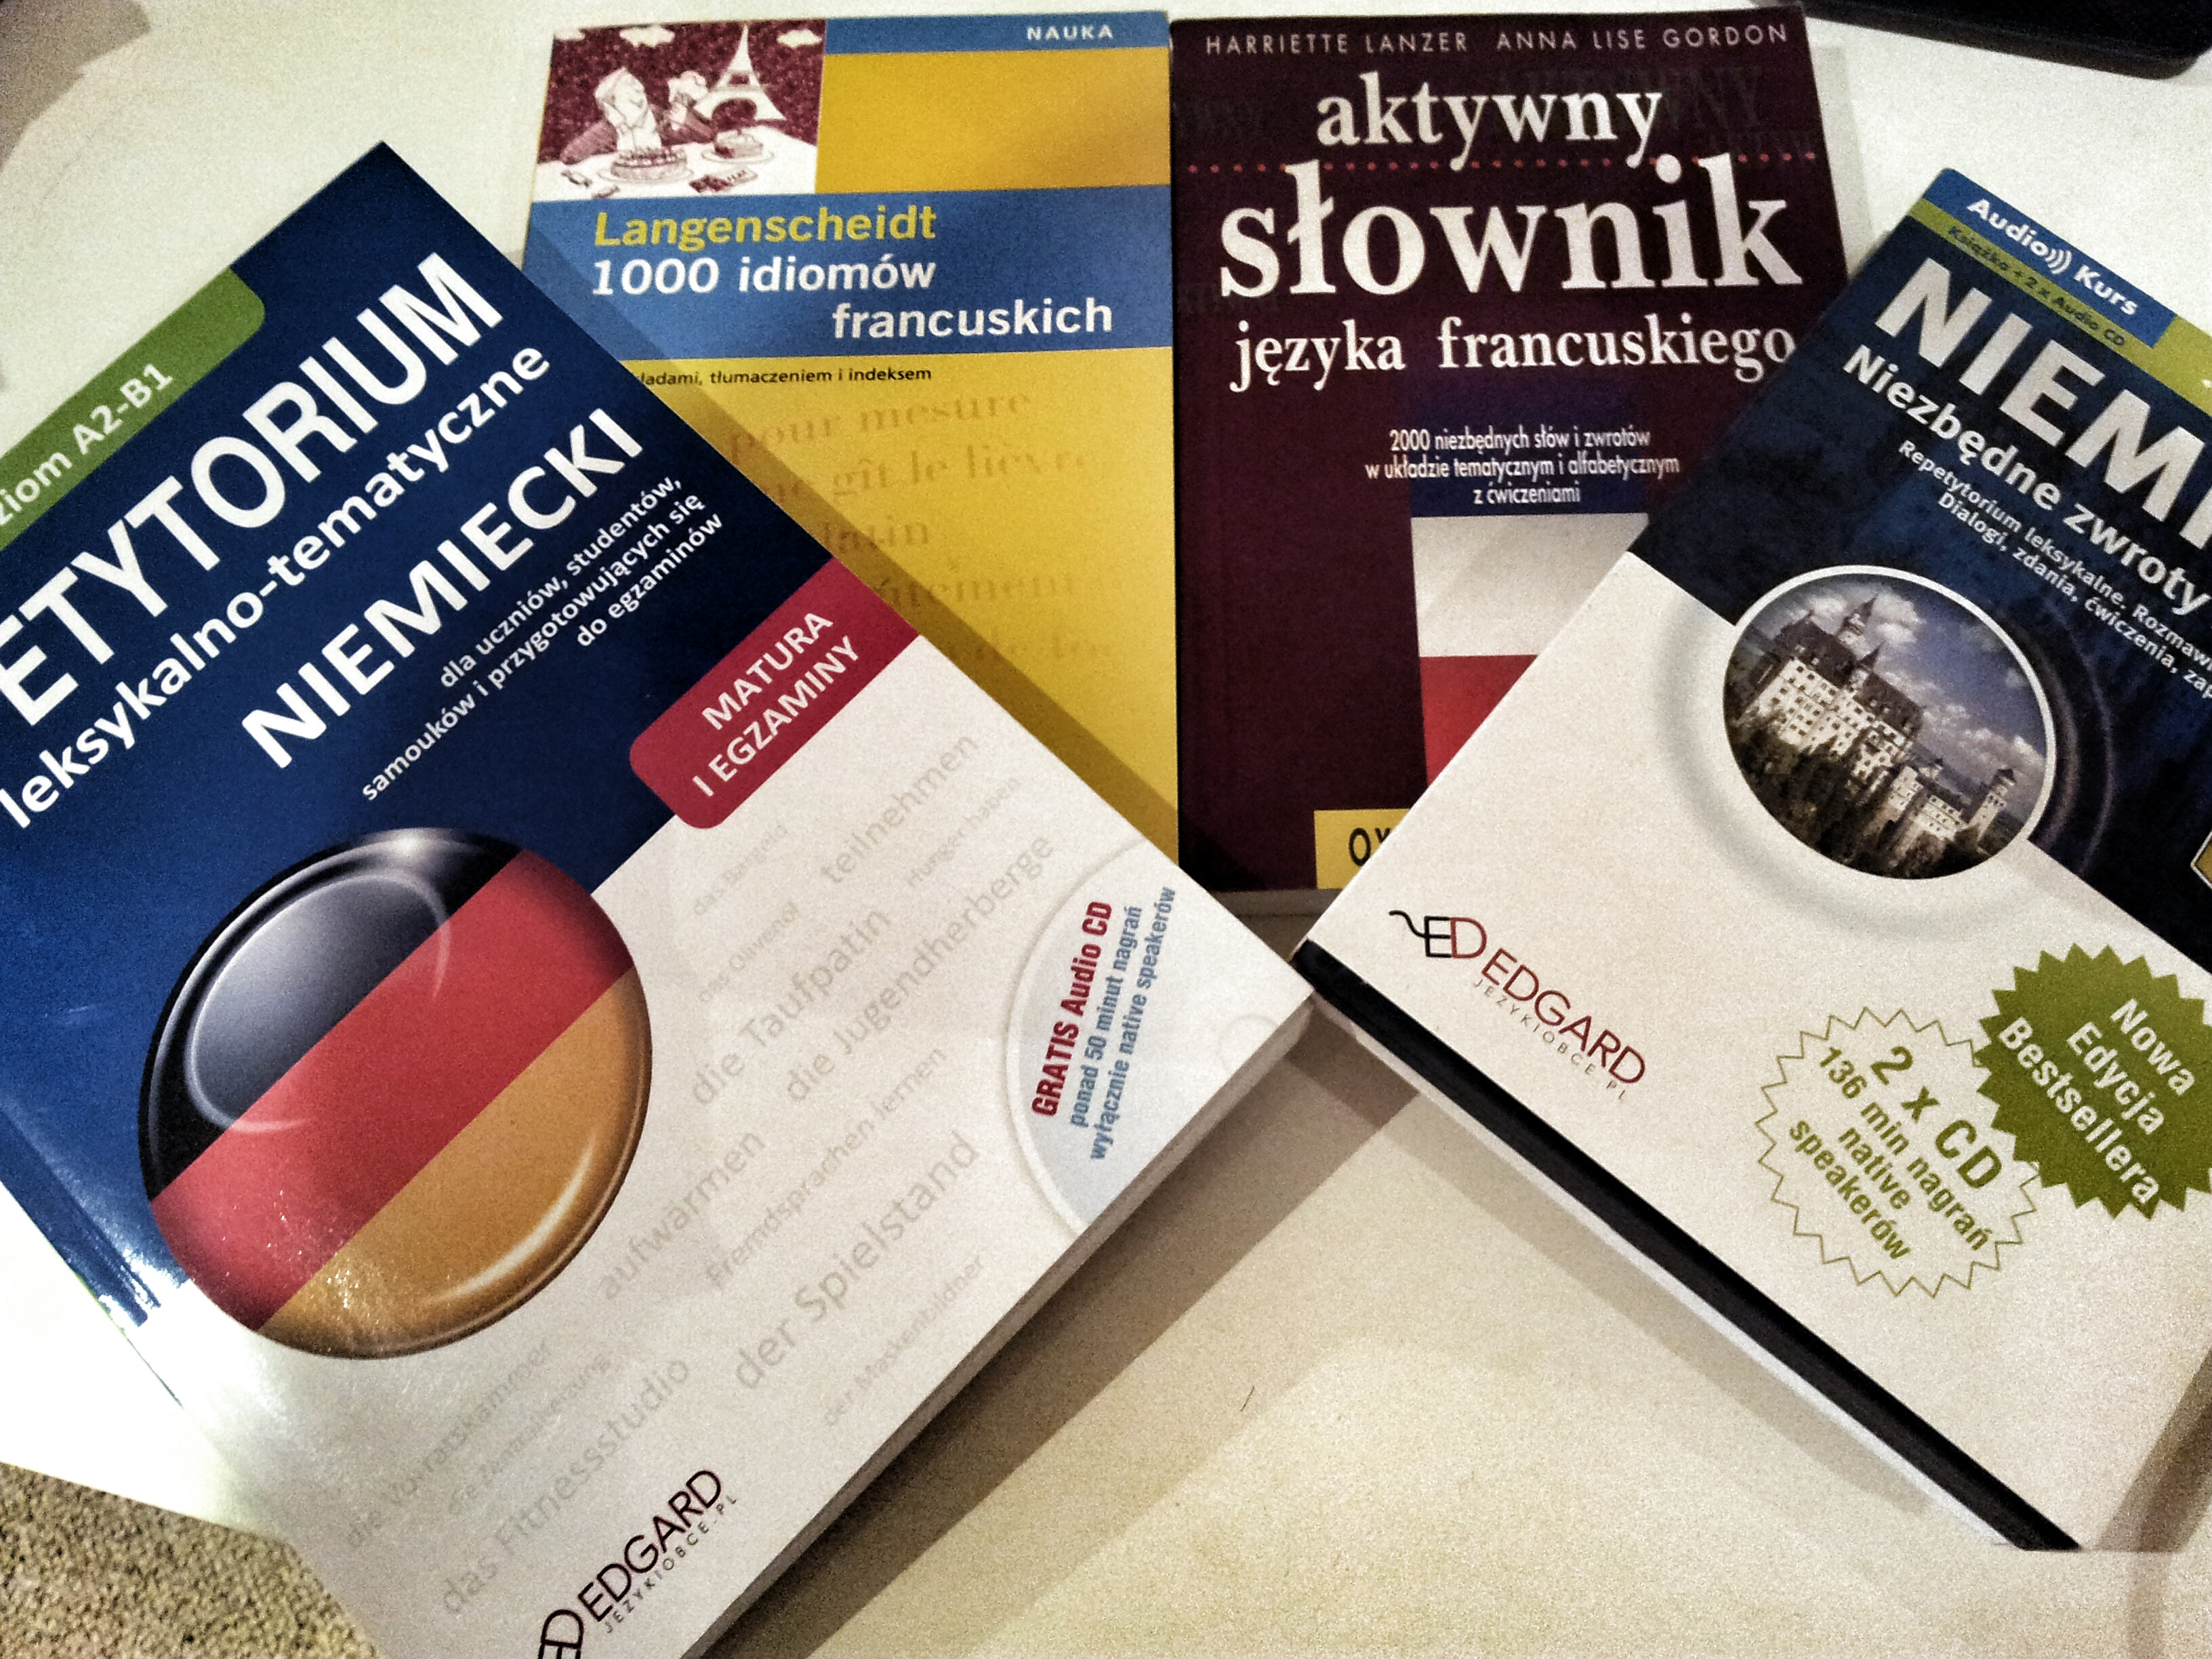 learning french and german can be cheap or free with the right books